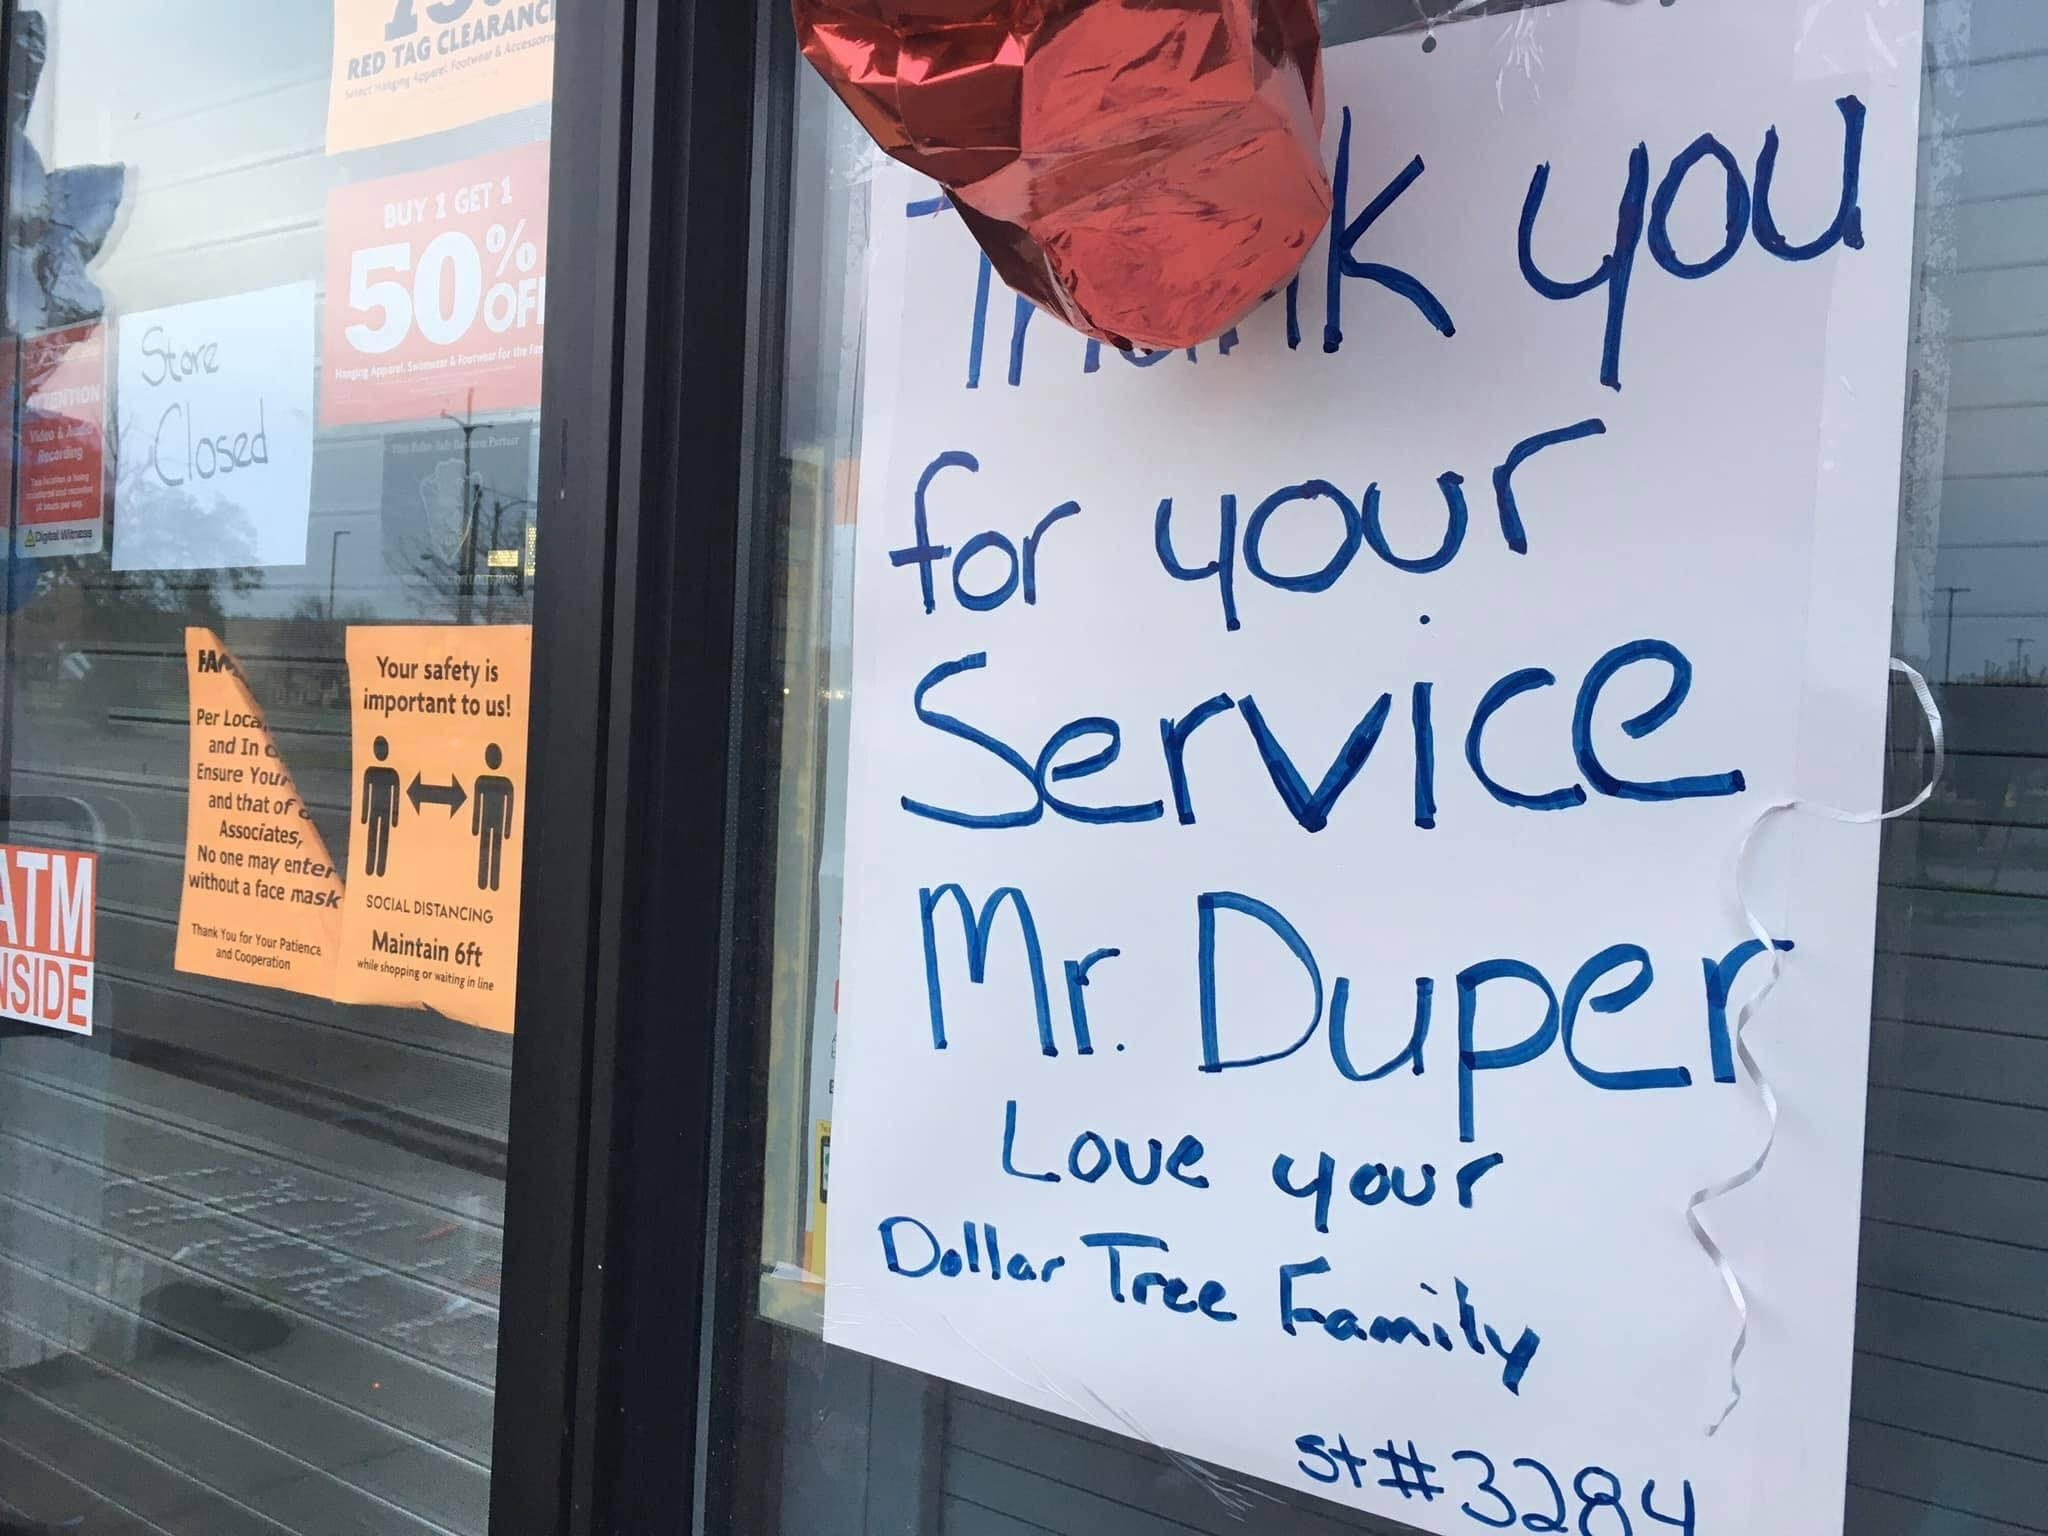 """A hand-drawn poster that reads """"Thank you for your service Mr. Duper, Love your Dollar Tree Family"""""""